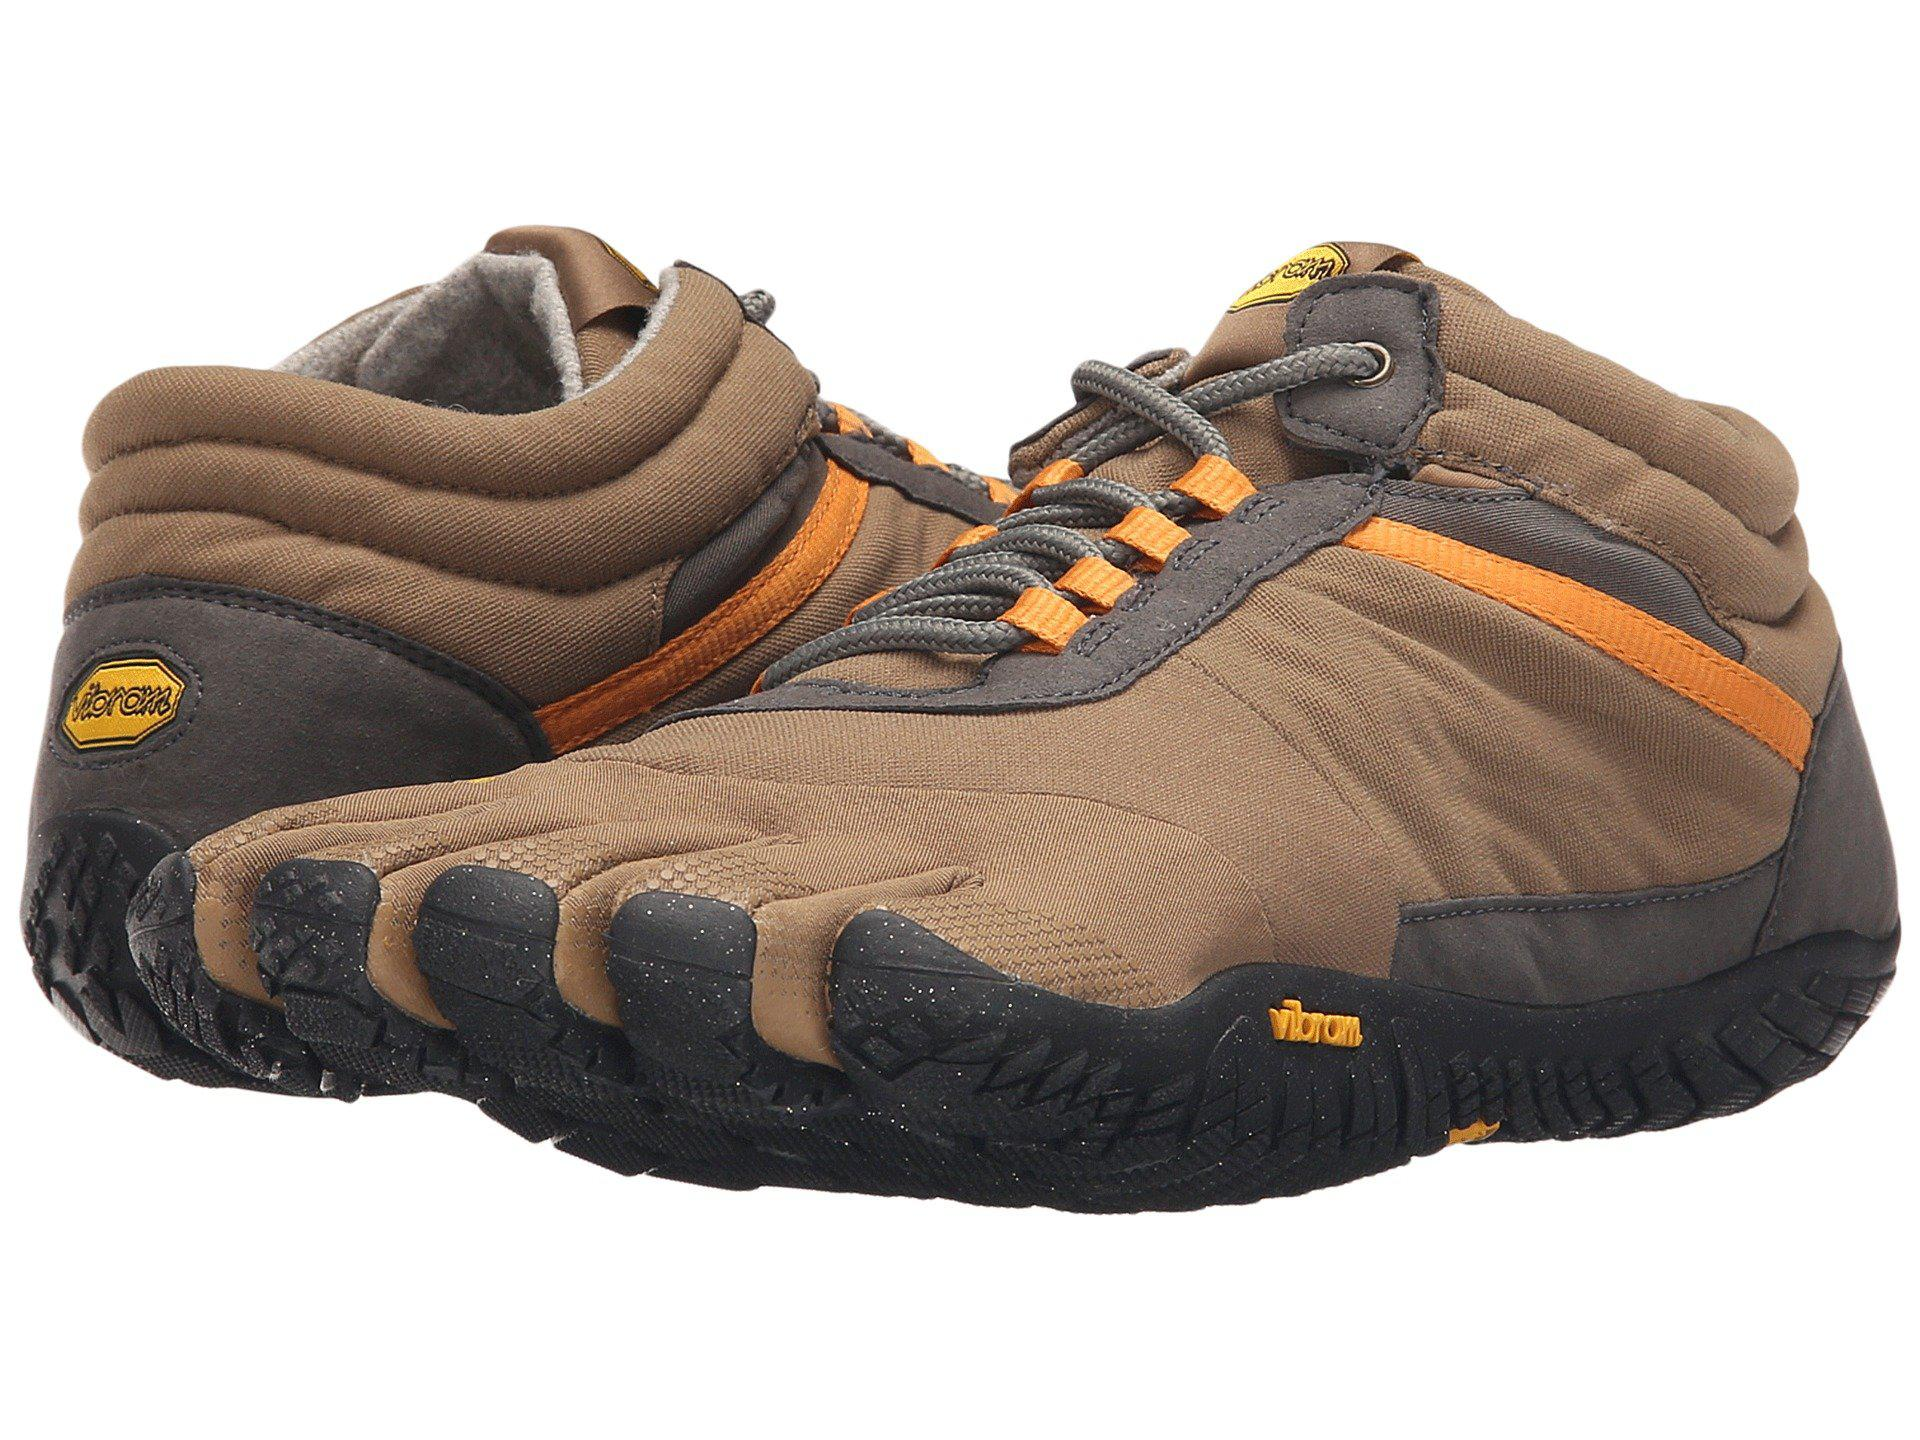 outlet store cbfe5 1e3e7 Vibram Fivefingers. Gray Trek Ascent (insulated Black) Men s Shoes.  130  From Zappos. Free shipping ...